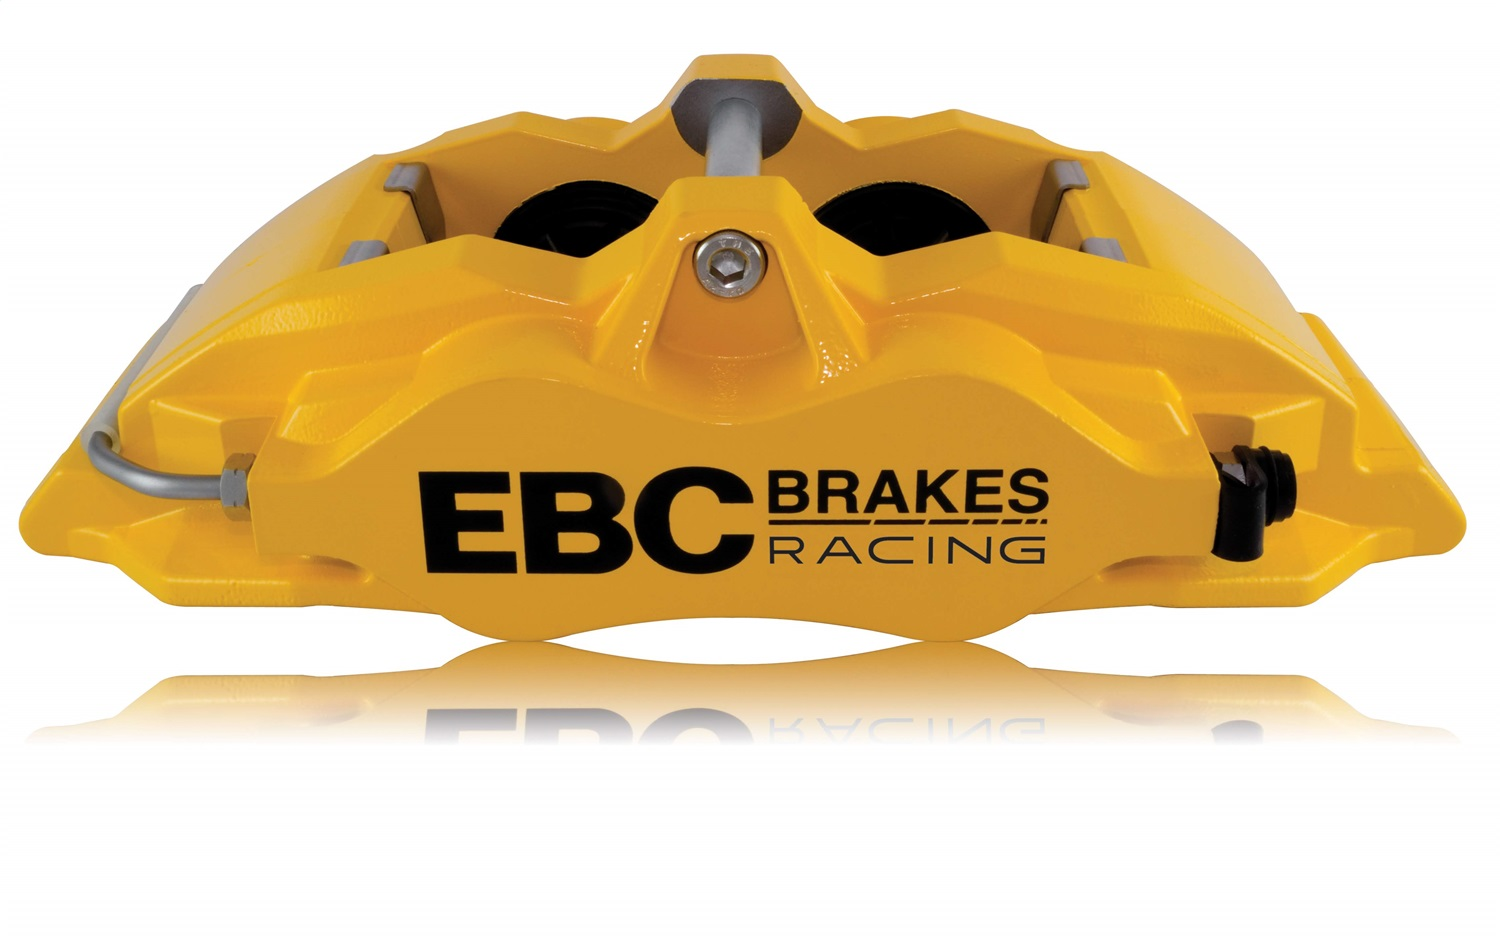 EBC Brakes BC4102YEL-R Apollo-4 Brake Calipers Fits 94-11 M3 RX-8